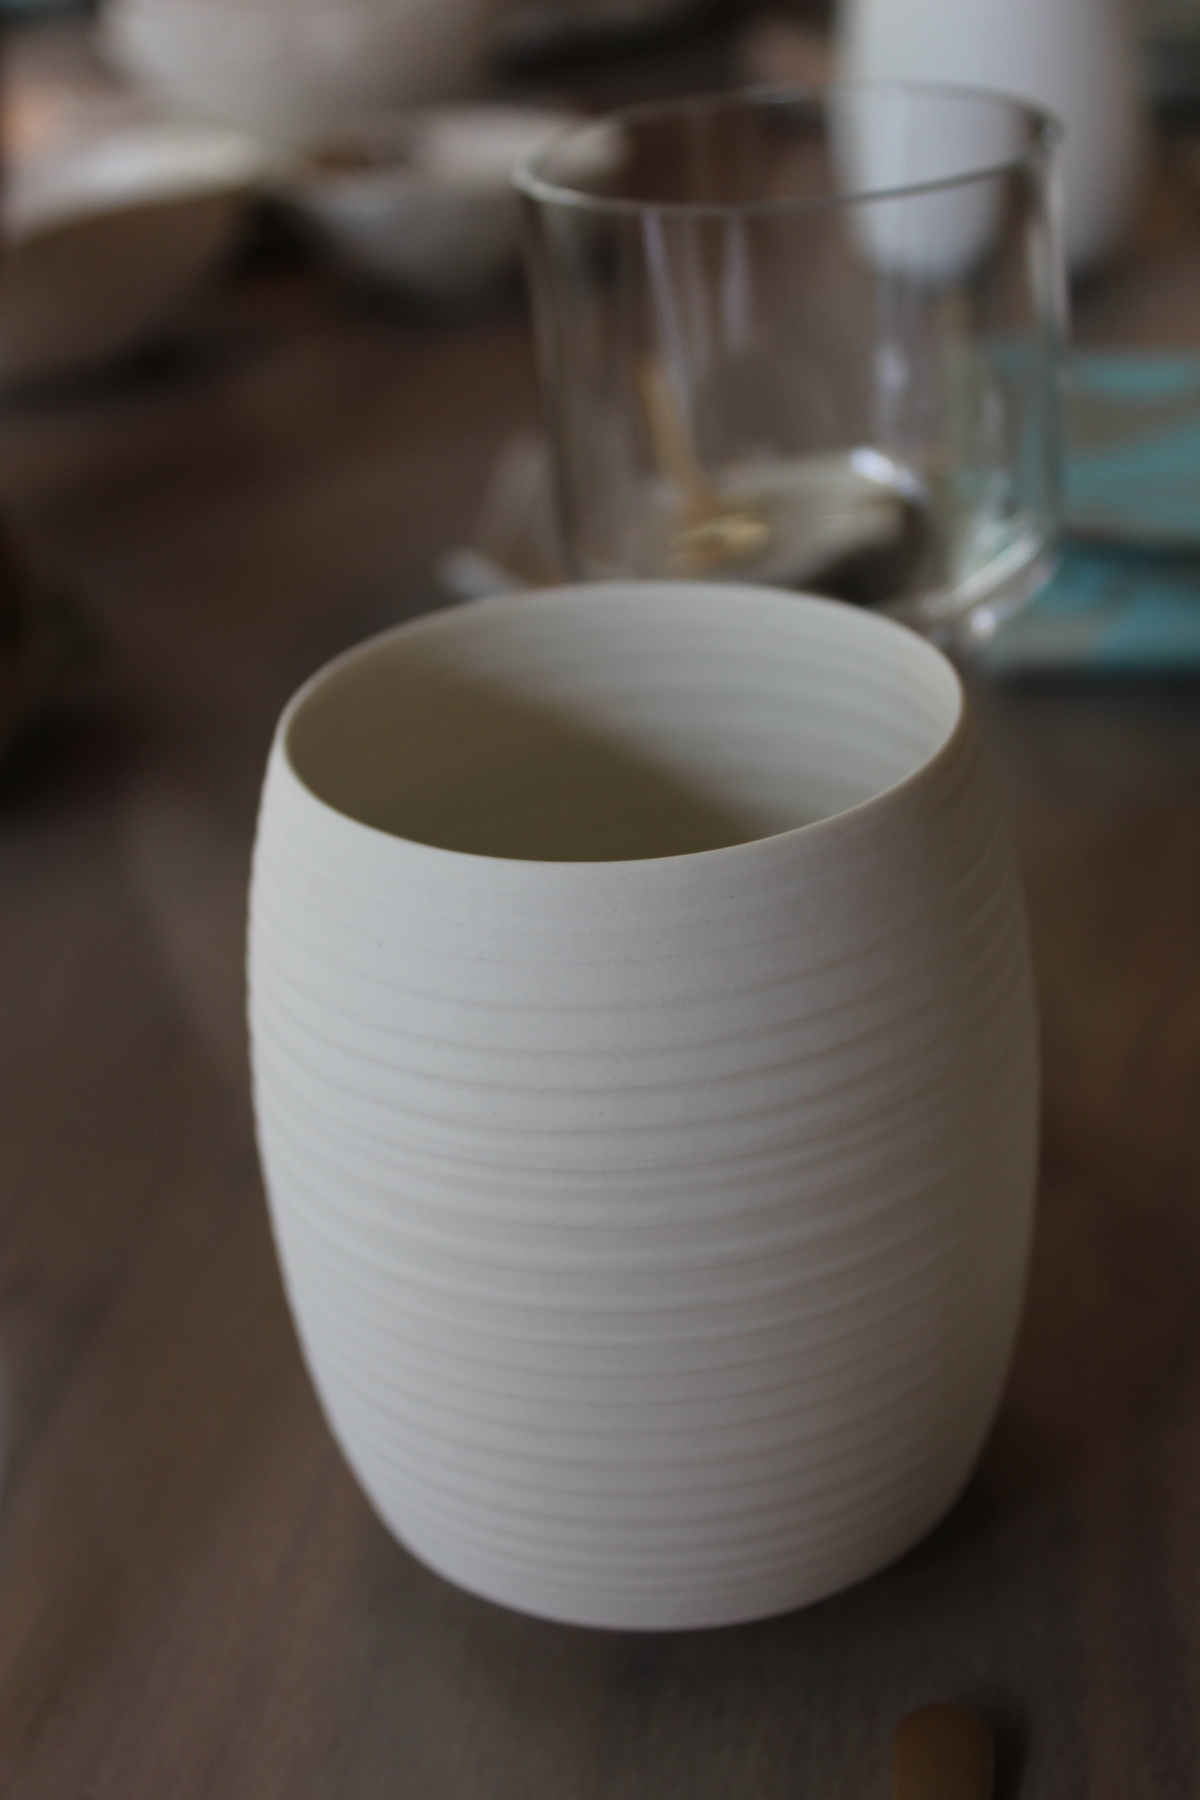 porcelain bisque cup - sake, tea or vase - wonderful matte exterior with glazed interior